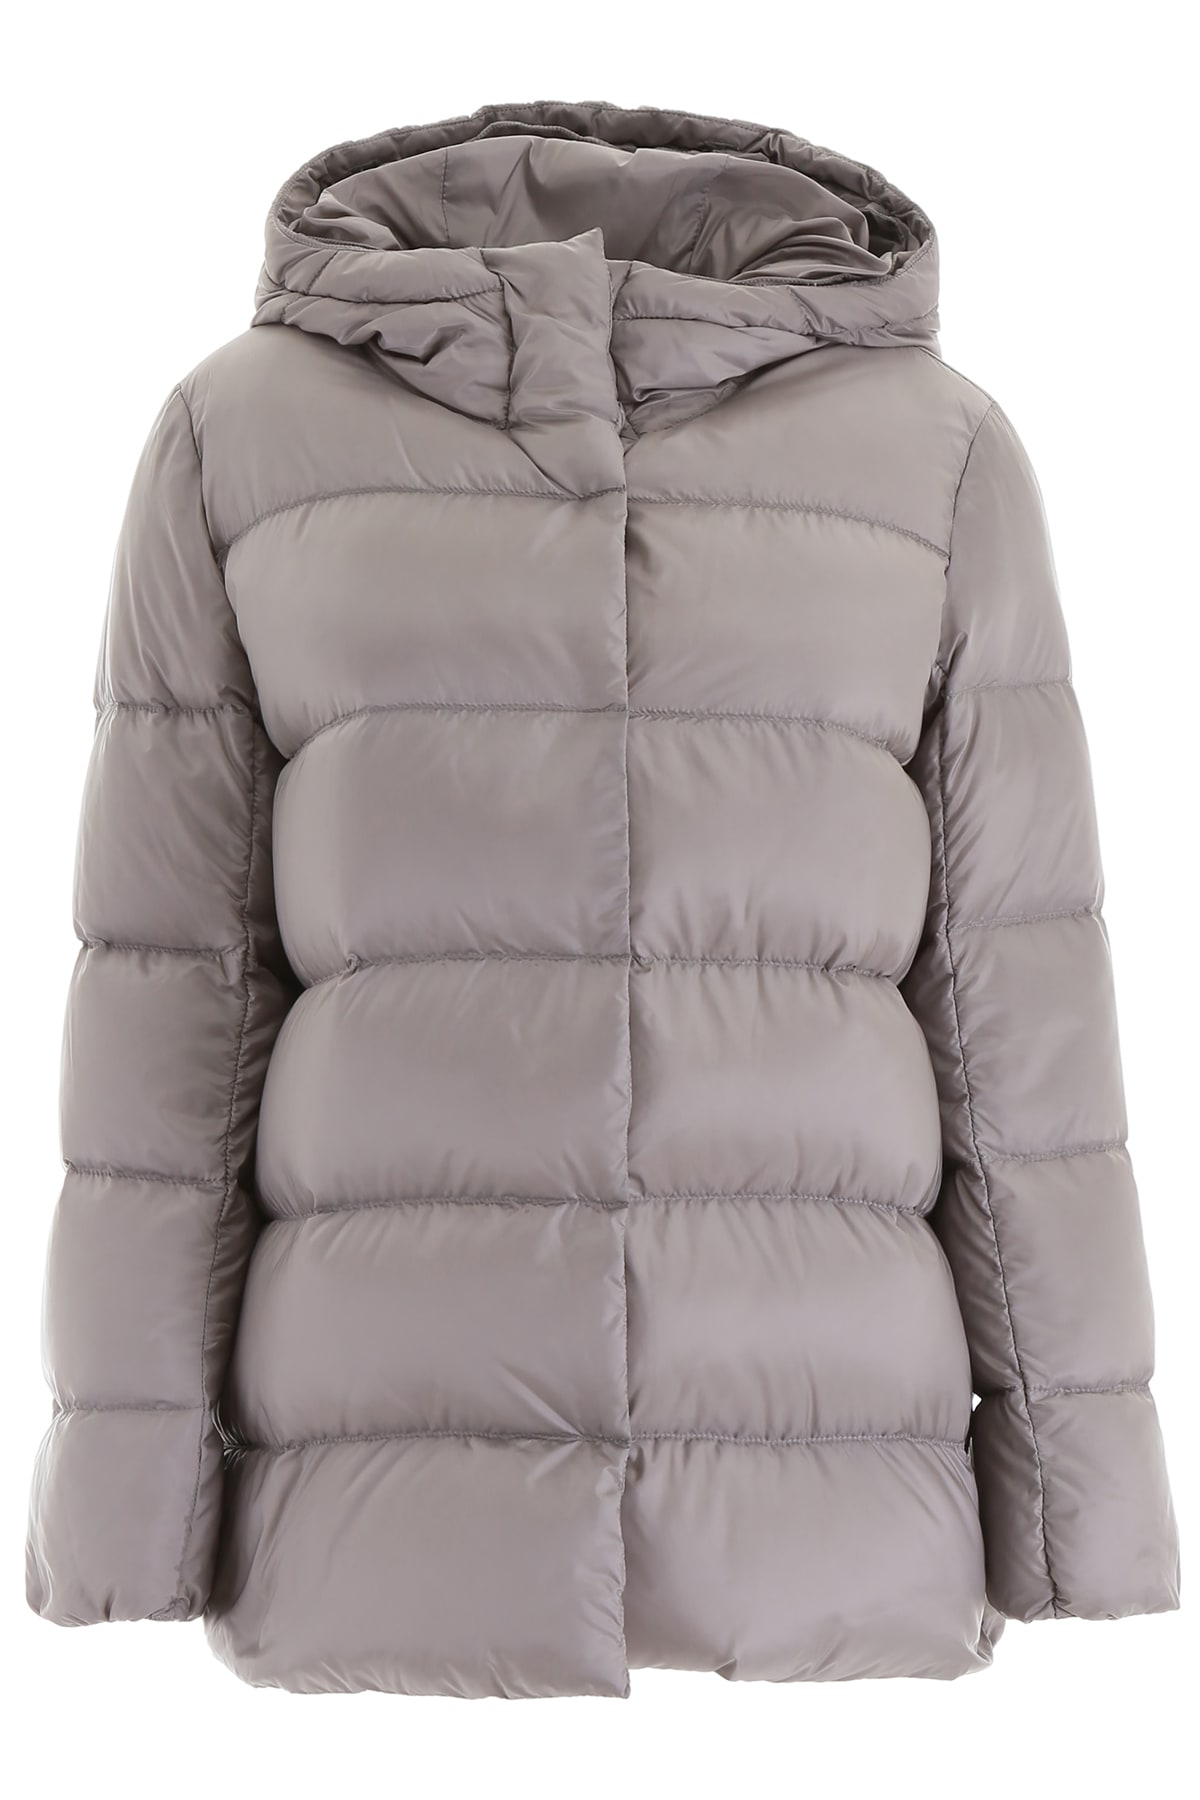 S Max Mara Here is The Cube Seicar Puffer Jacket